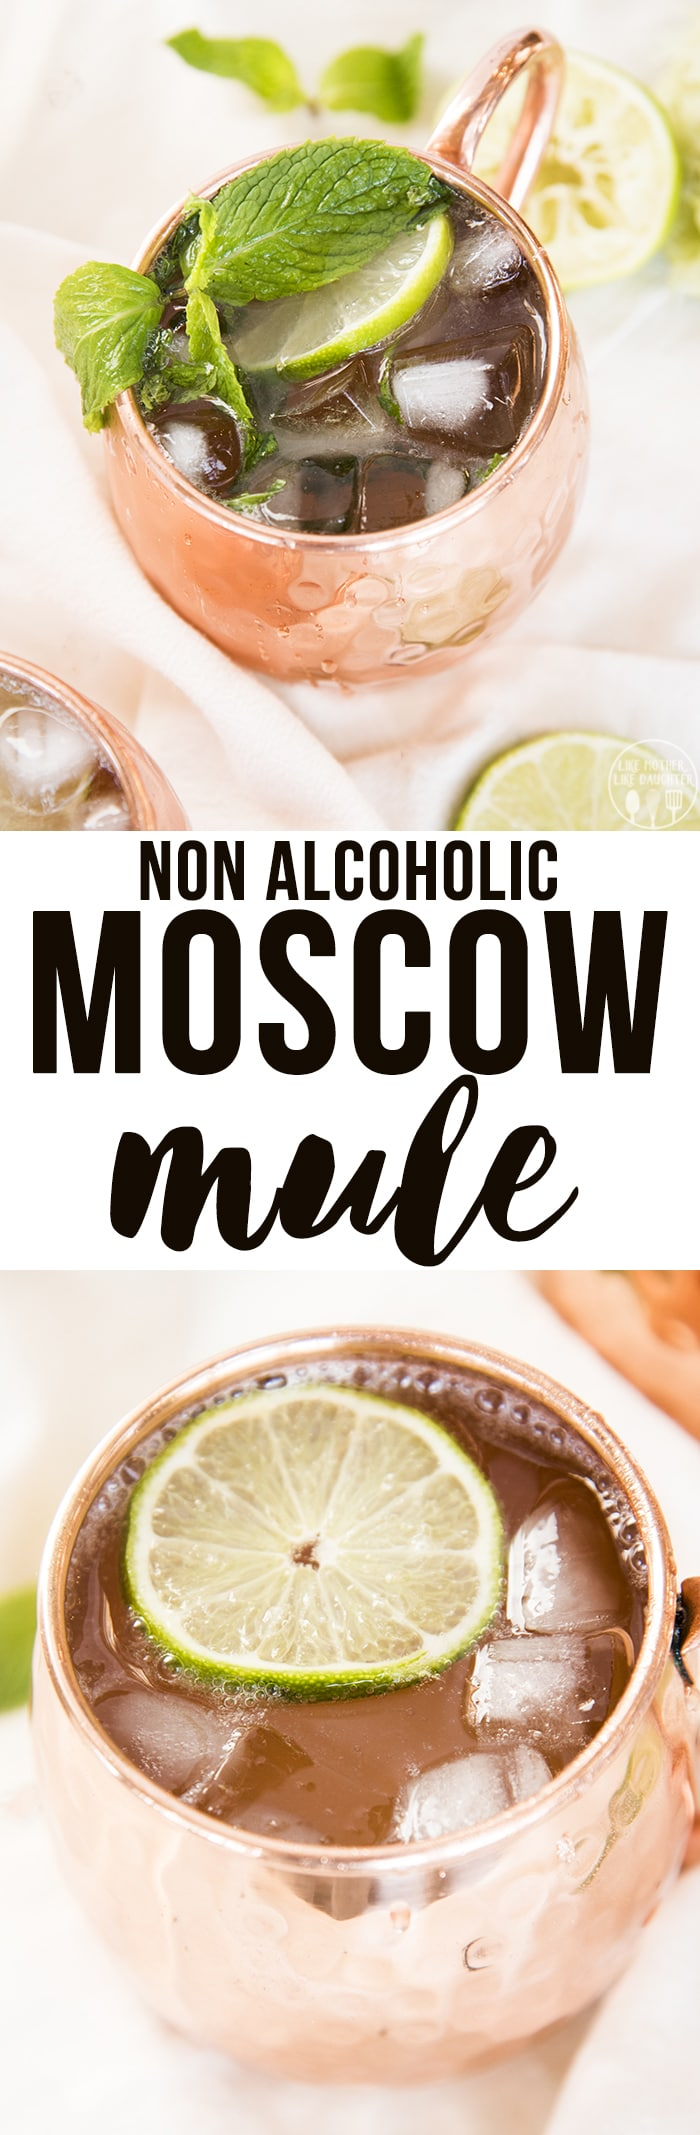 Non Alcoholic Moscow Mule is the perfect spicy and refreshing mocktail, perfect for a hot summer night or a winter holiday party!